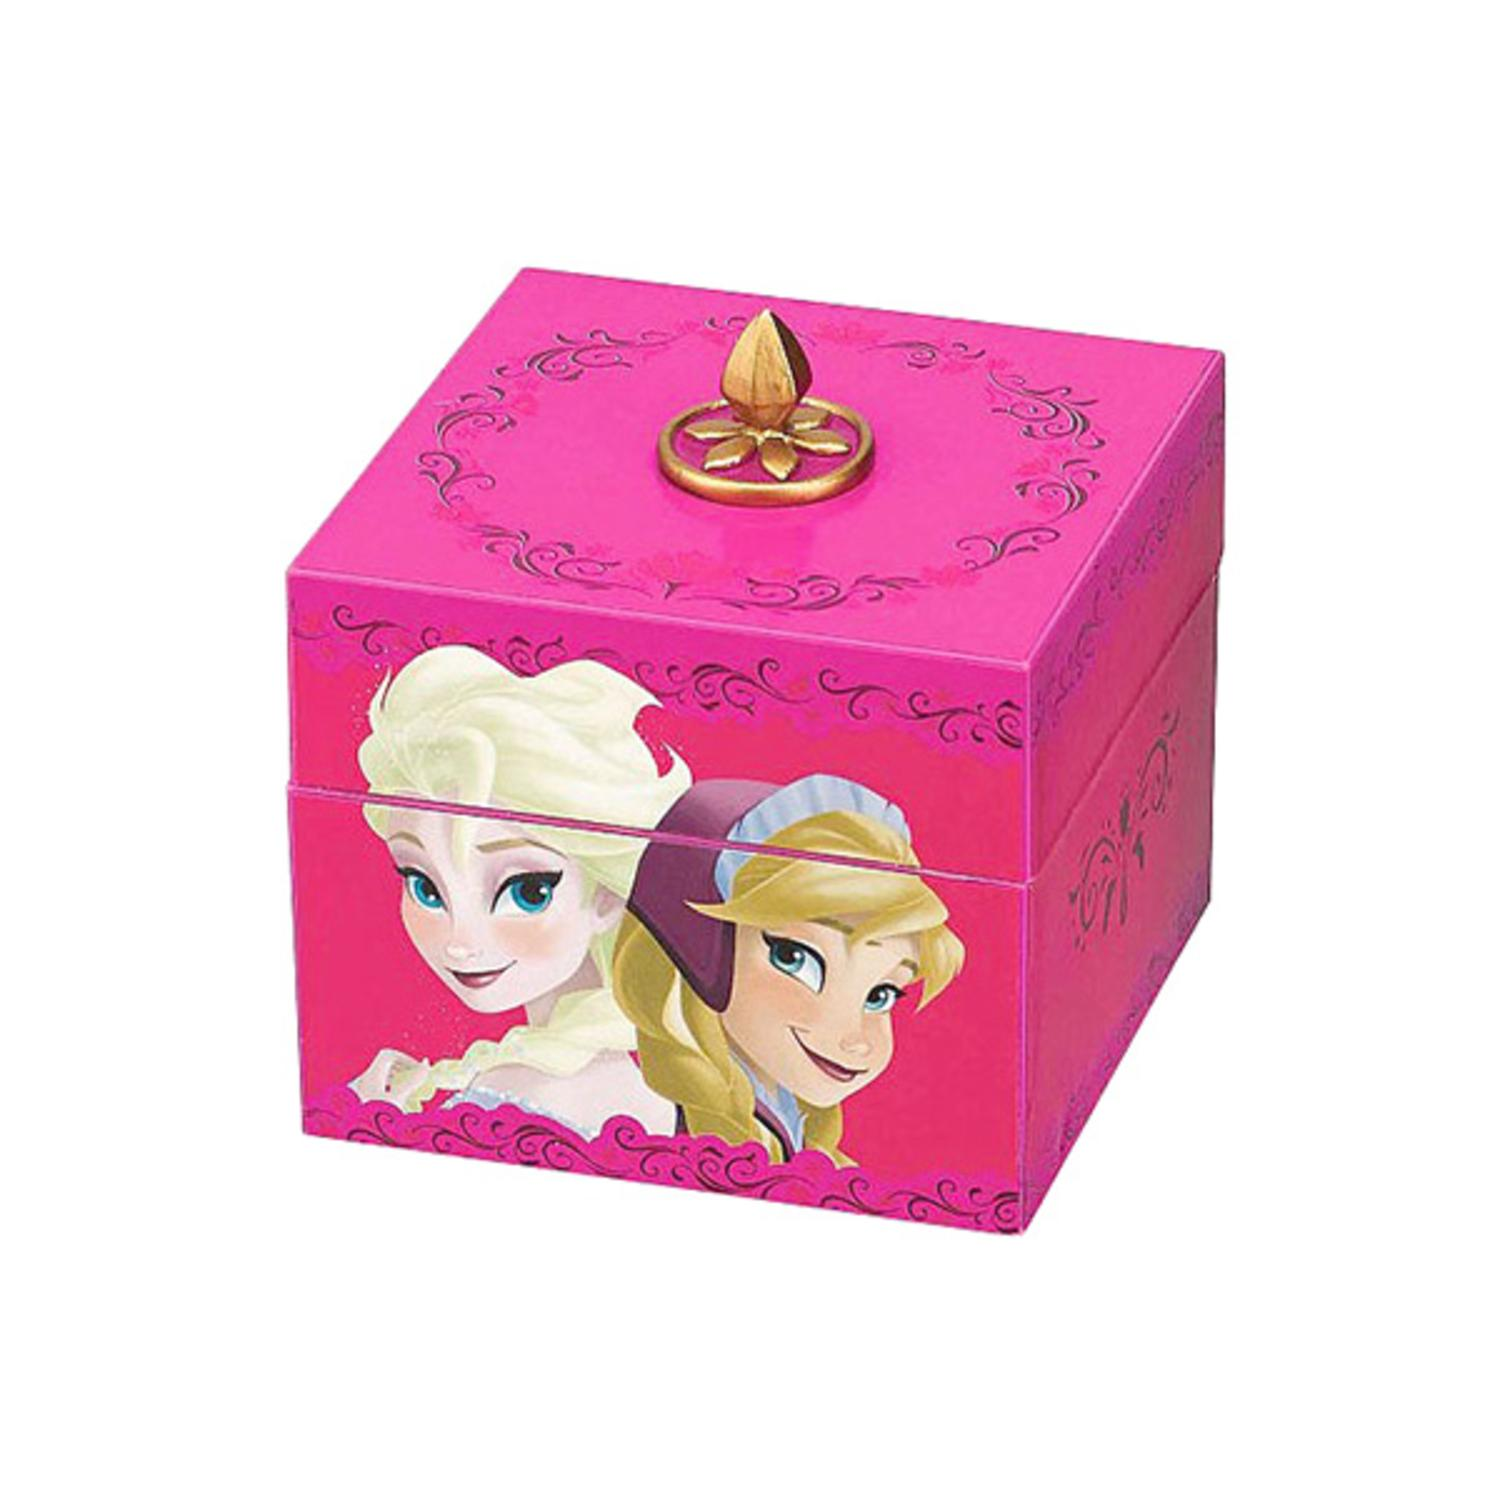 Mr. Christmas Disney Frozen Anna and Elsa Musical Keepsake Box with Pendant Necklace #11884